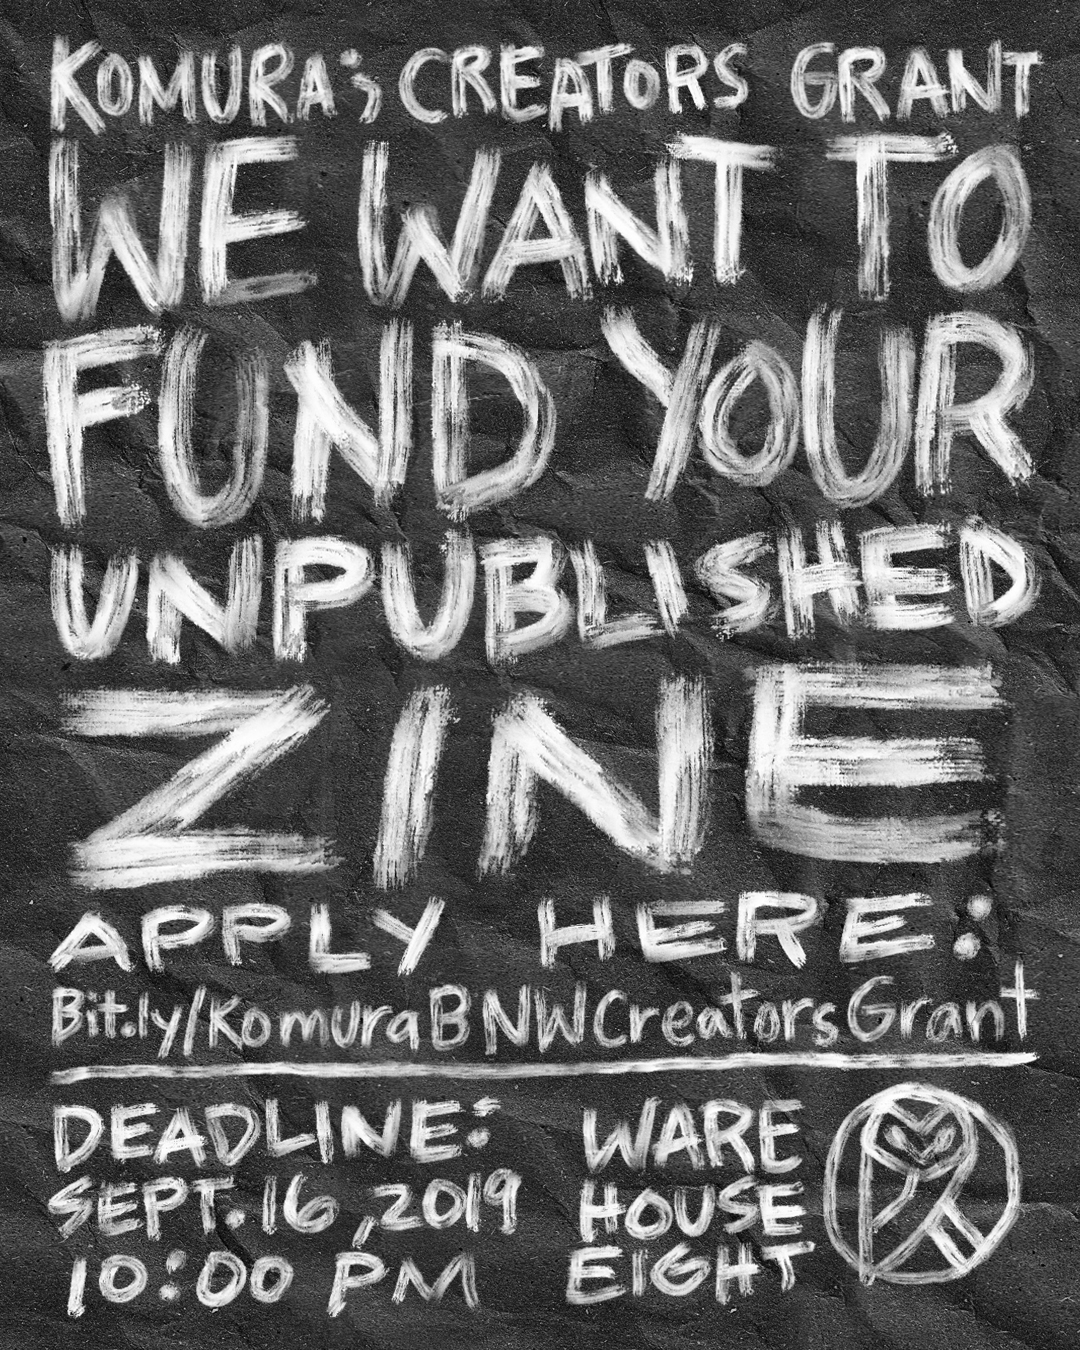 Komura wants to fund your unpublished zine